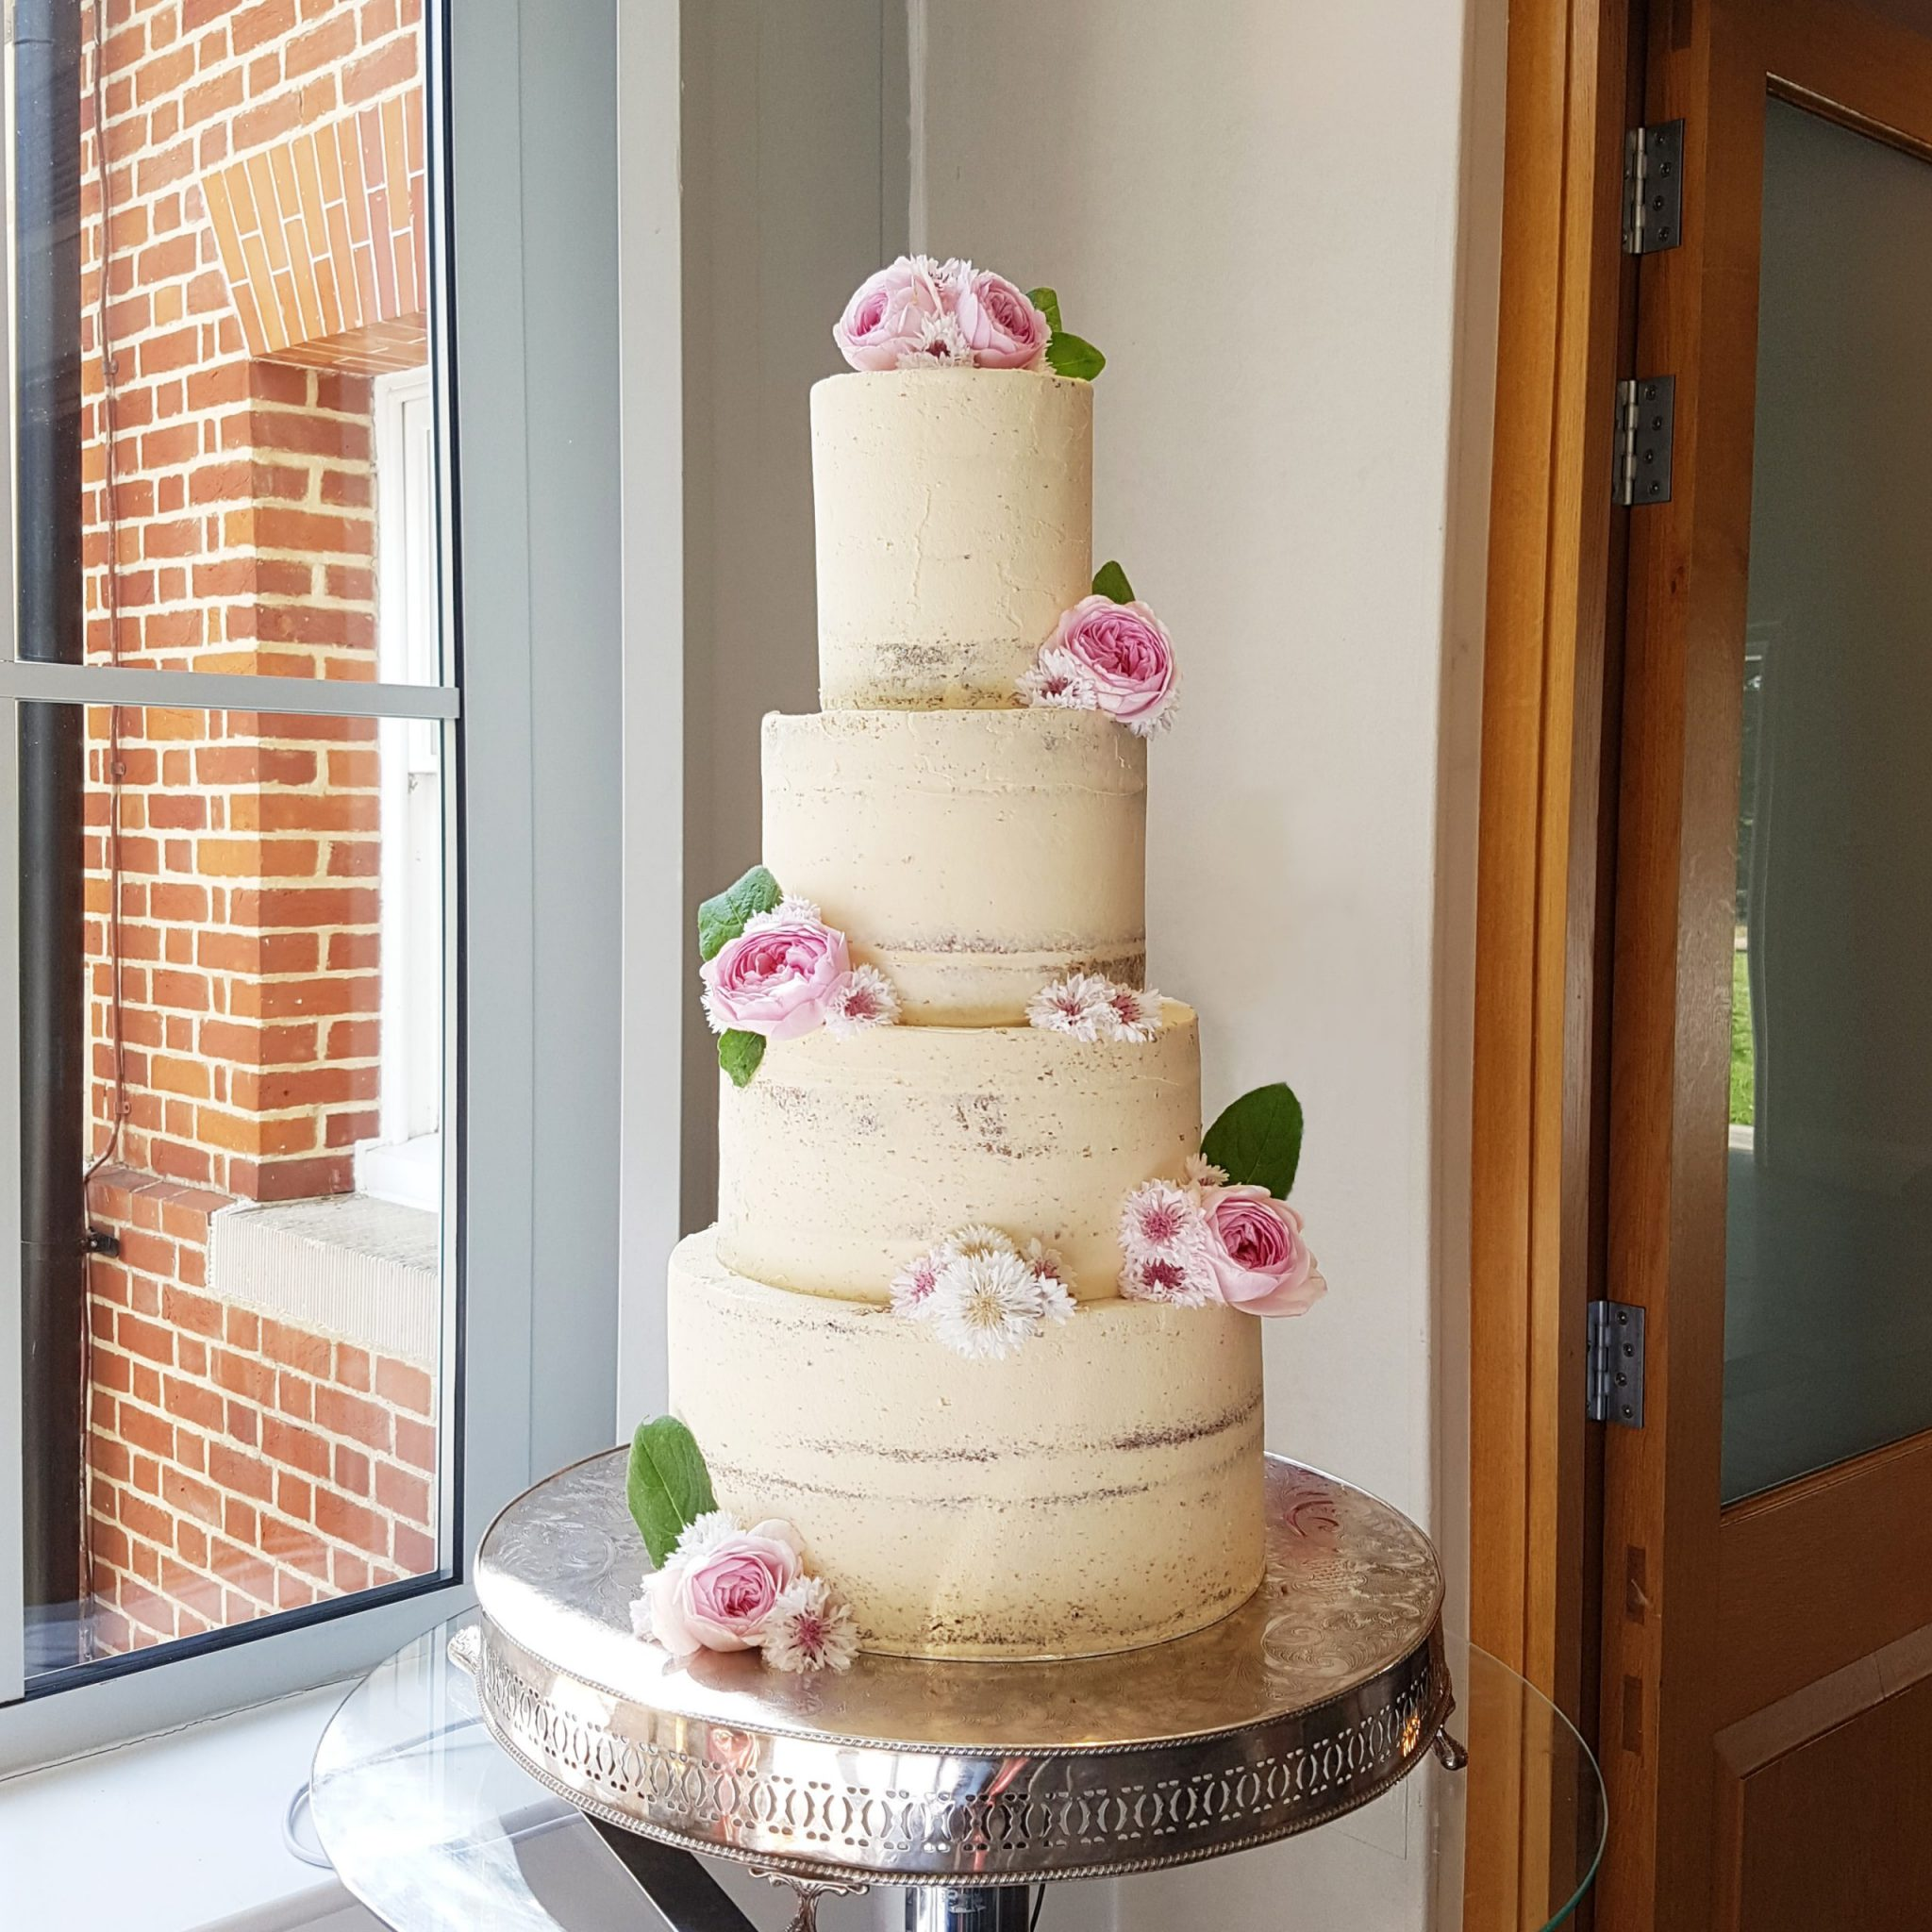 Semi-Naked Wedding Cake with White and Pink Flowers